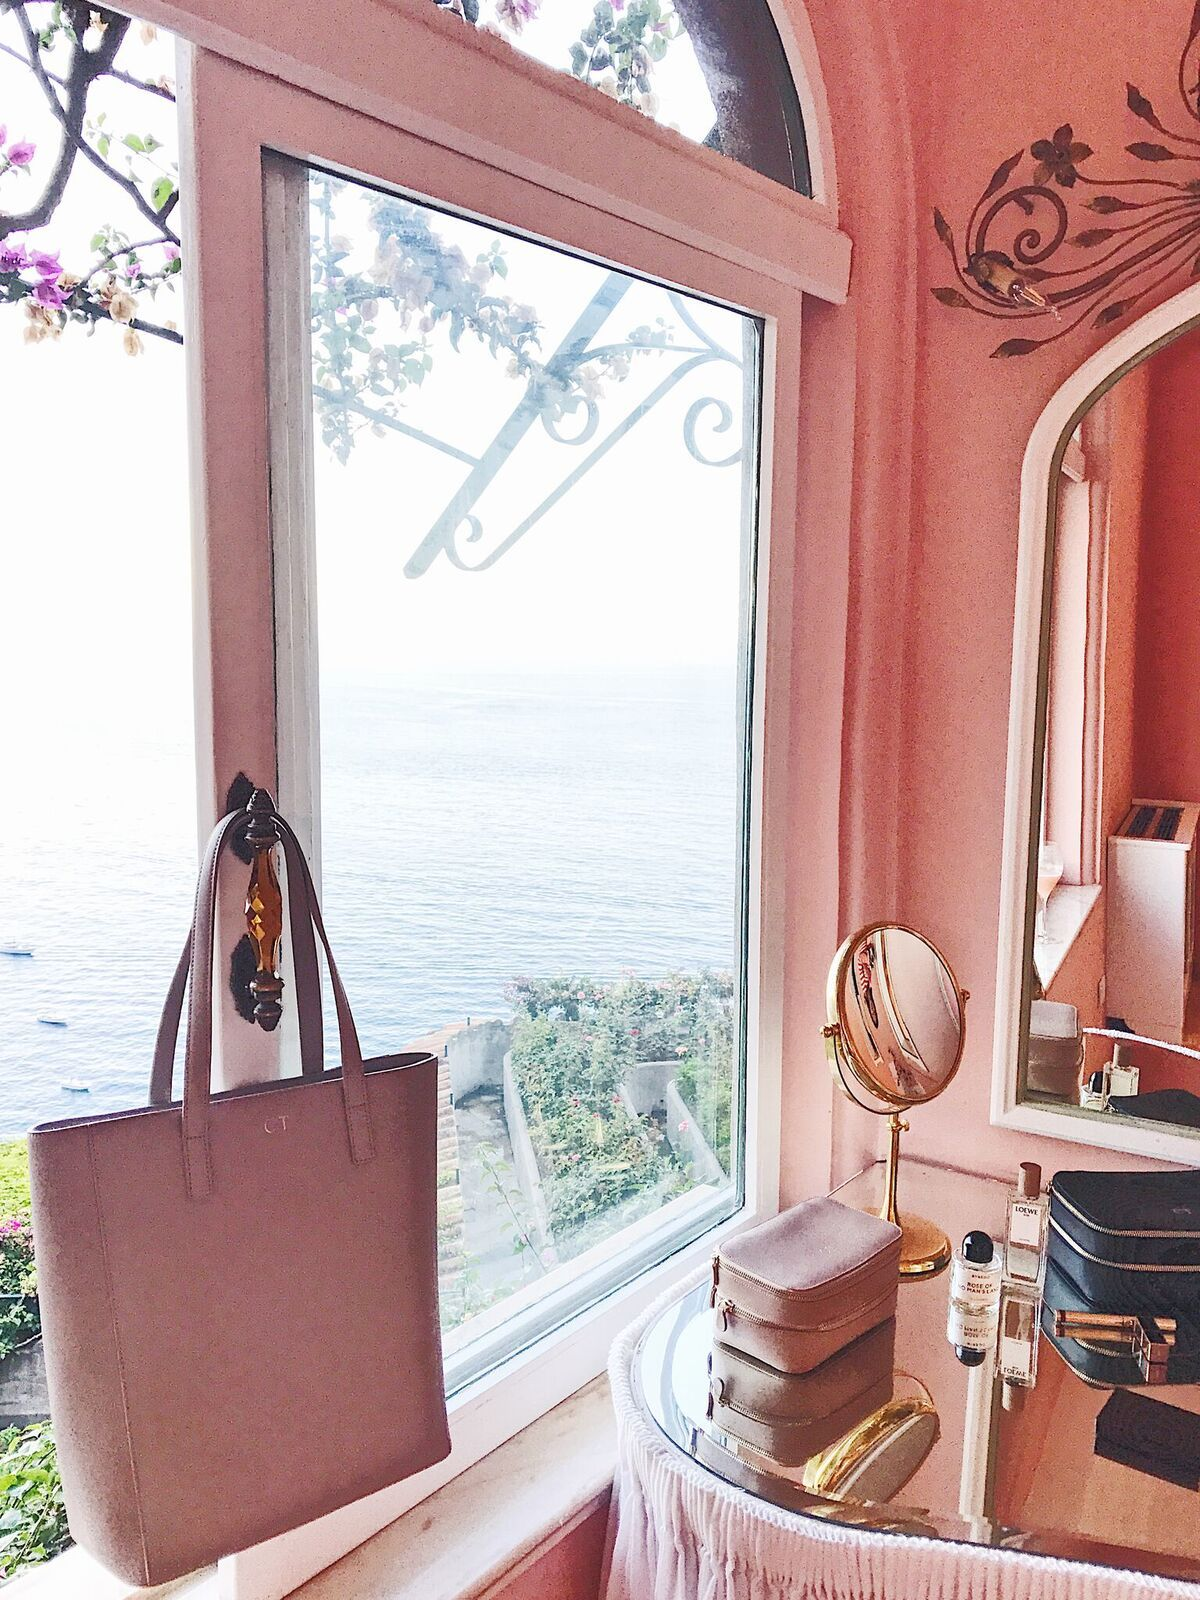 tde square tote looking stunning in the blush pink hotel room in amalfi the square tote is the perfect bag for exploring italy fits everything you might